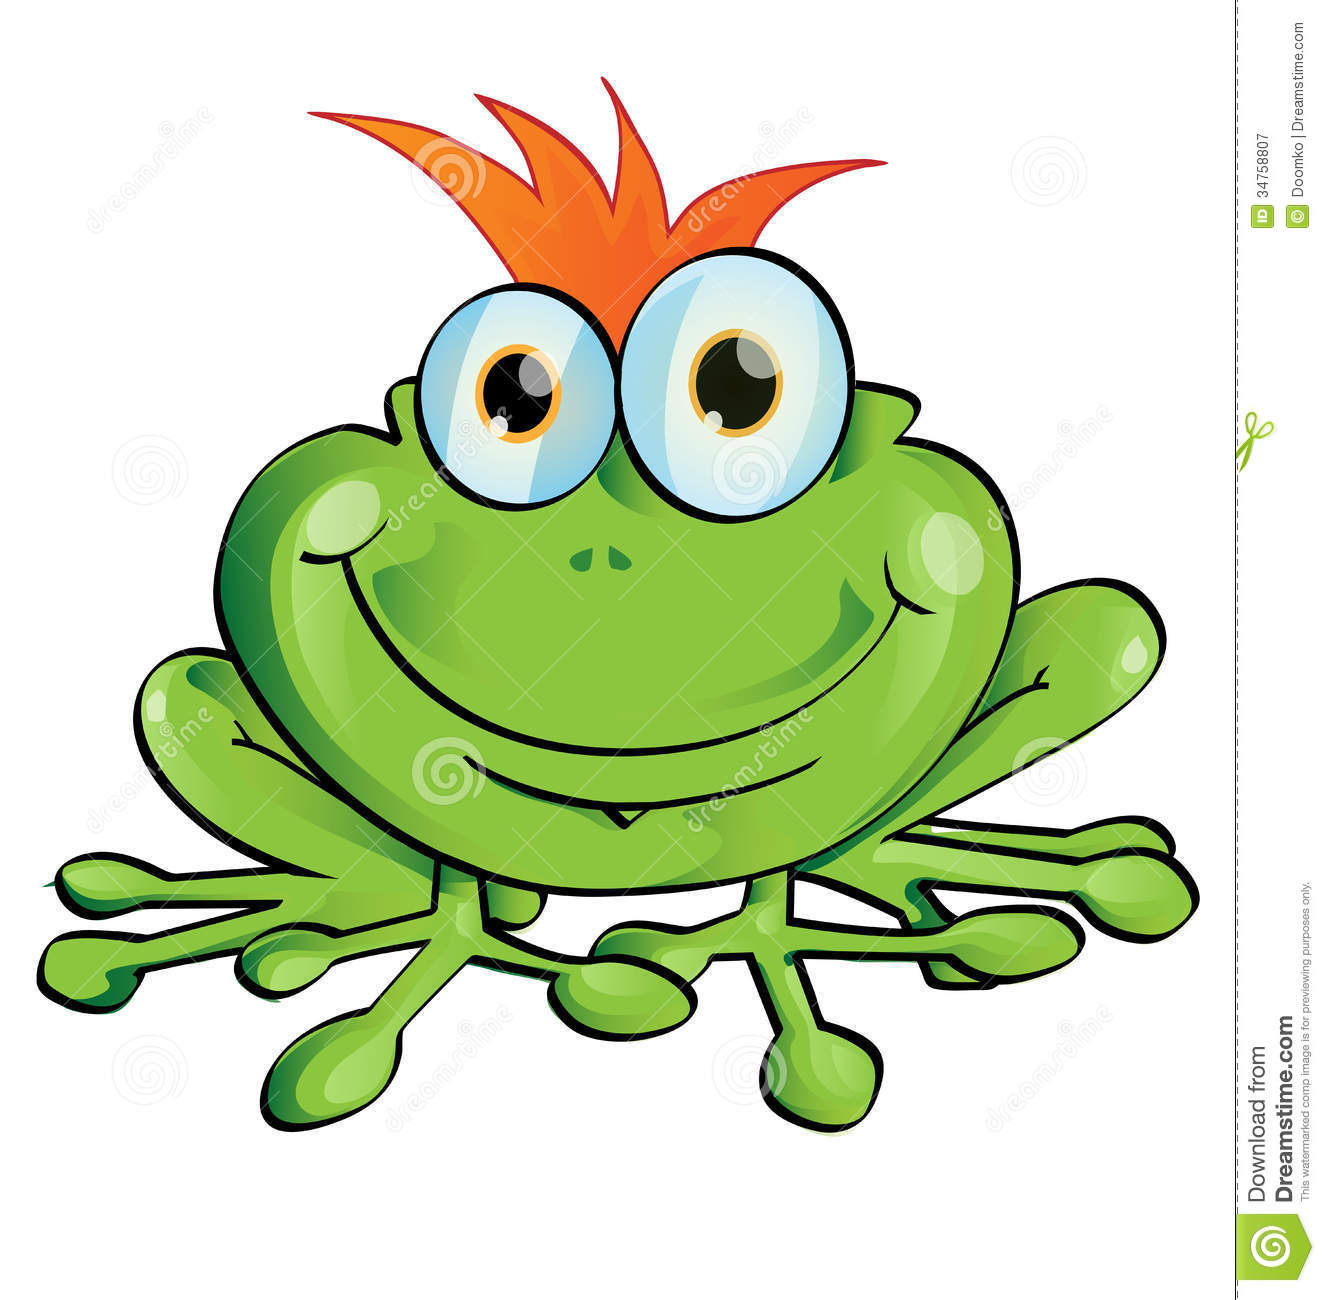 Funny Frog Royalty Free Stock Photography - Image: 34758807